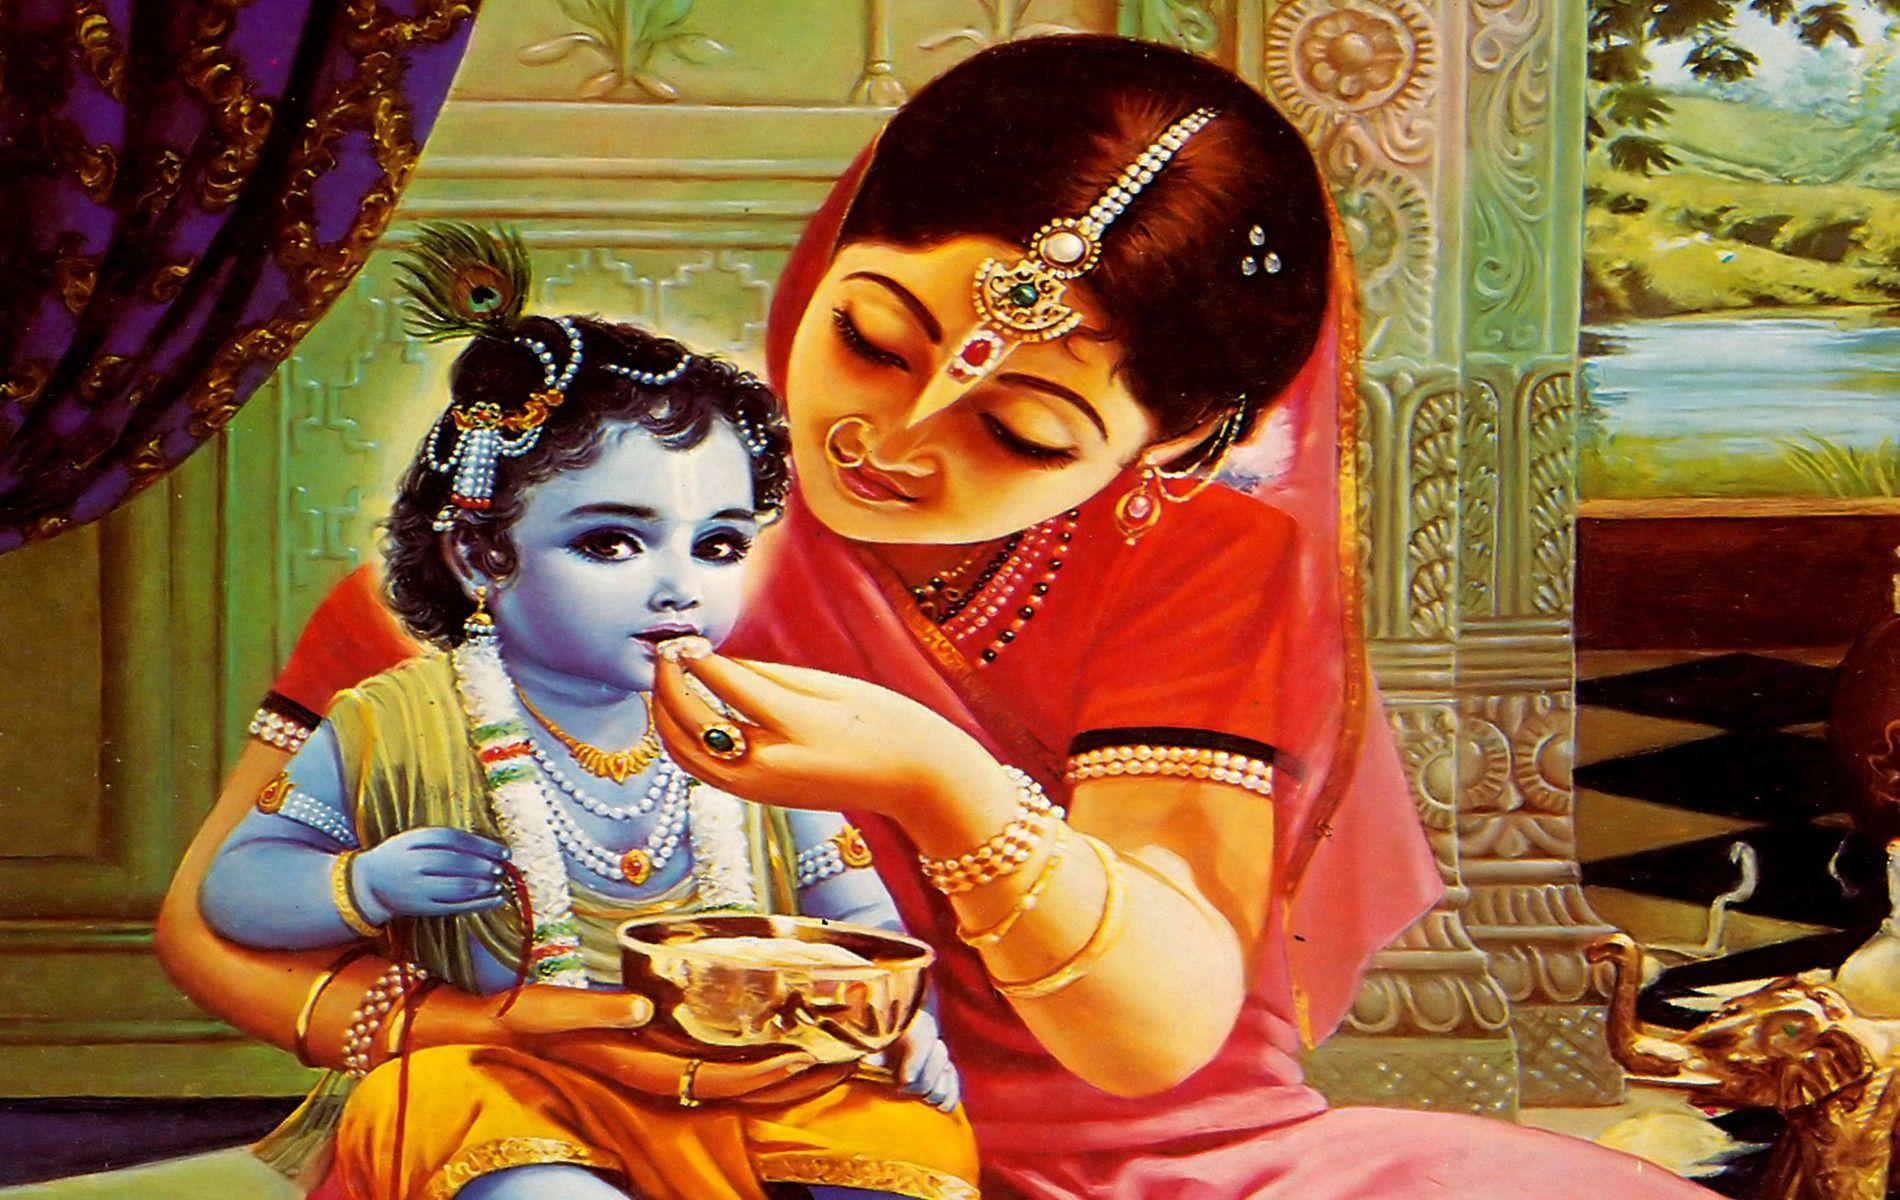 Bal gopal krishna wallpaper free download.